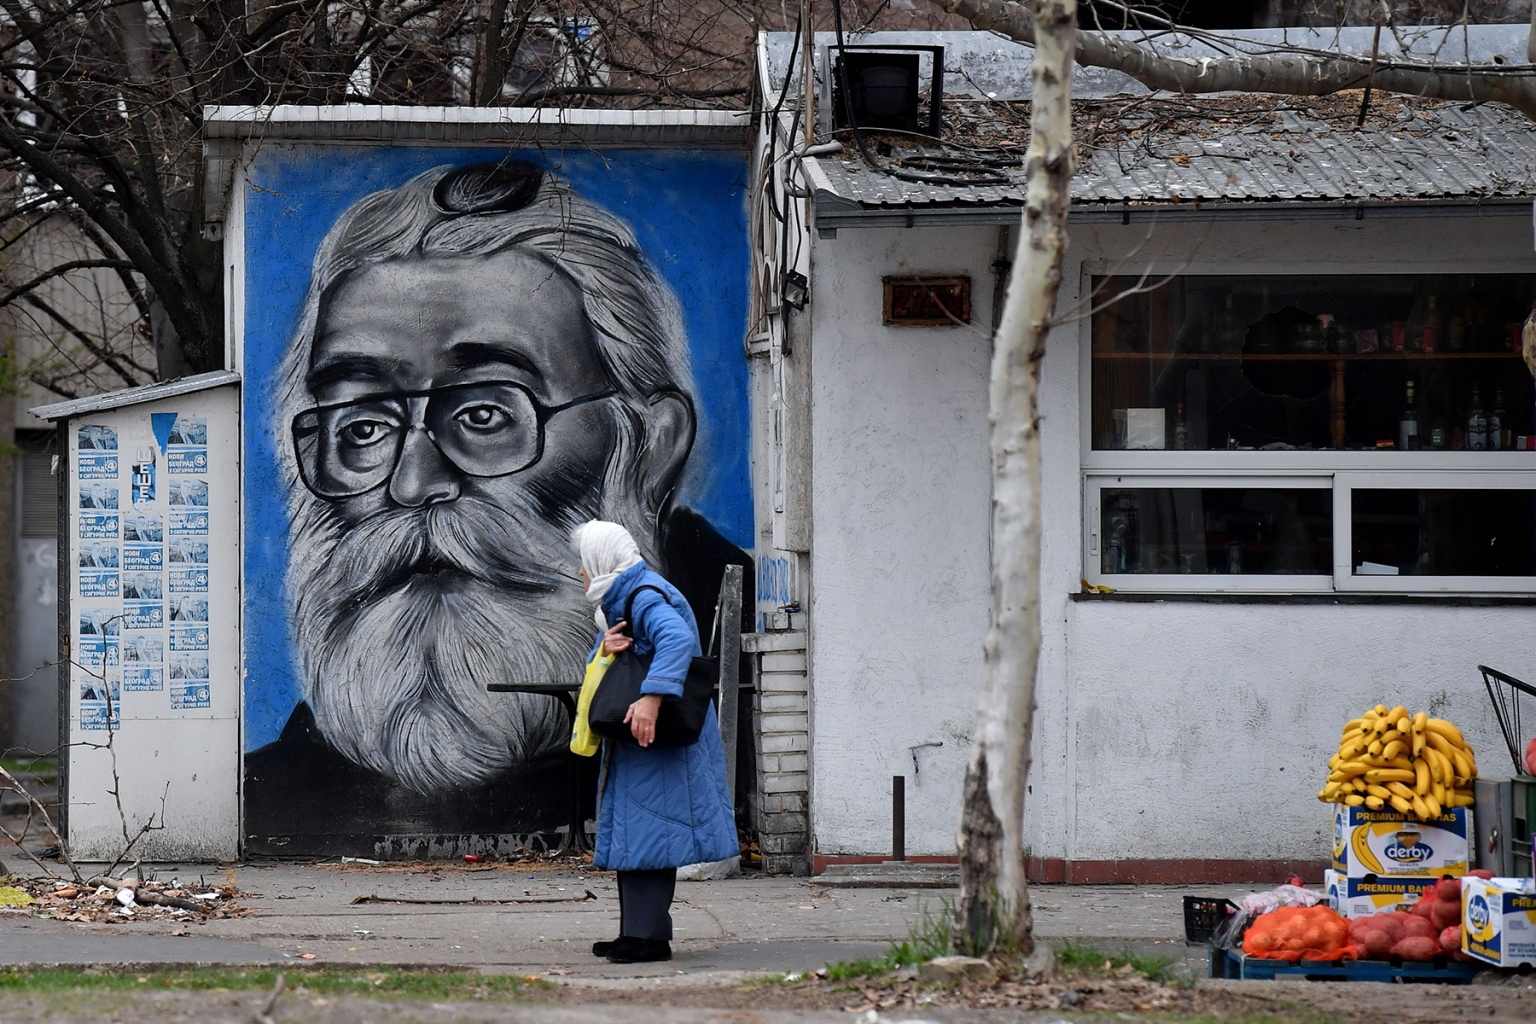 "A woman walks past a mural representing former Bosnian Serb leader Radovan Karadzic (shown here as Doctor Dabic from the time he was in hiding) on the wall of a tavern in Belgrade on March 20. Karadzic will spend the rest of his life in jail for the ""sheer scale and systematic cruelty"" of his crimes in the war that tore his country apart a quarter of a century ago, U.N.  judges, upholding his 2016 convictions for genocide in the Srebrenica massacre and war crimes in the 1990s. ANDREJ ISAKOVIC/AFP/Getty Images"